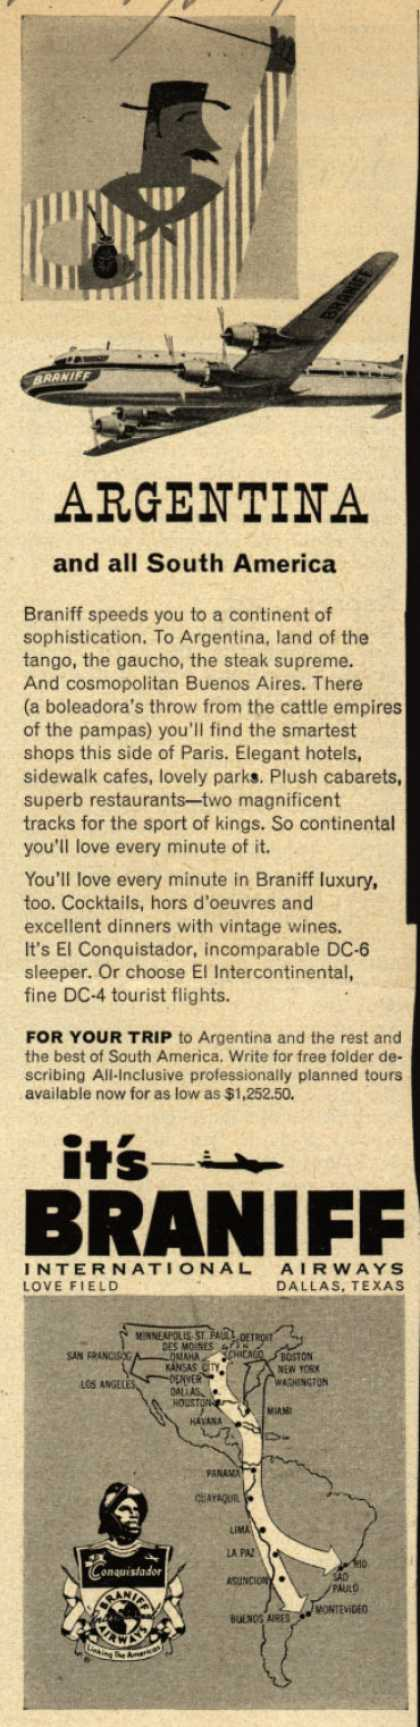 Braniff International Airway's South America – Argentina and South America (1953)